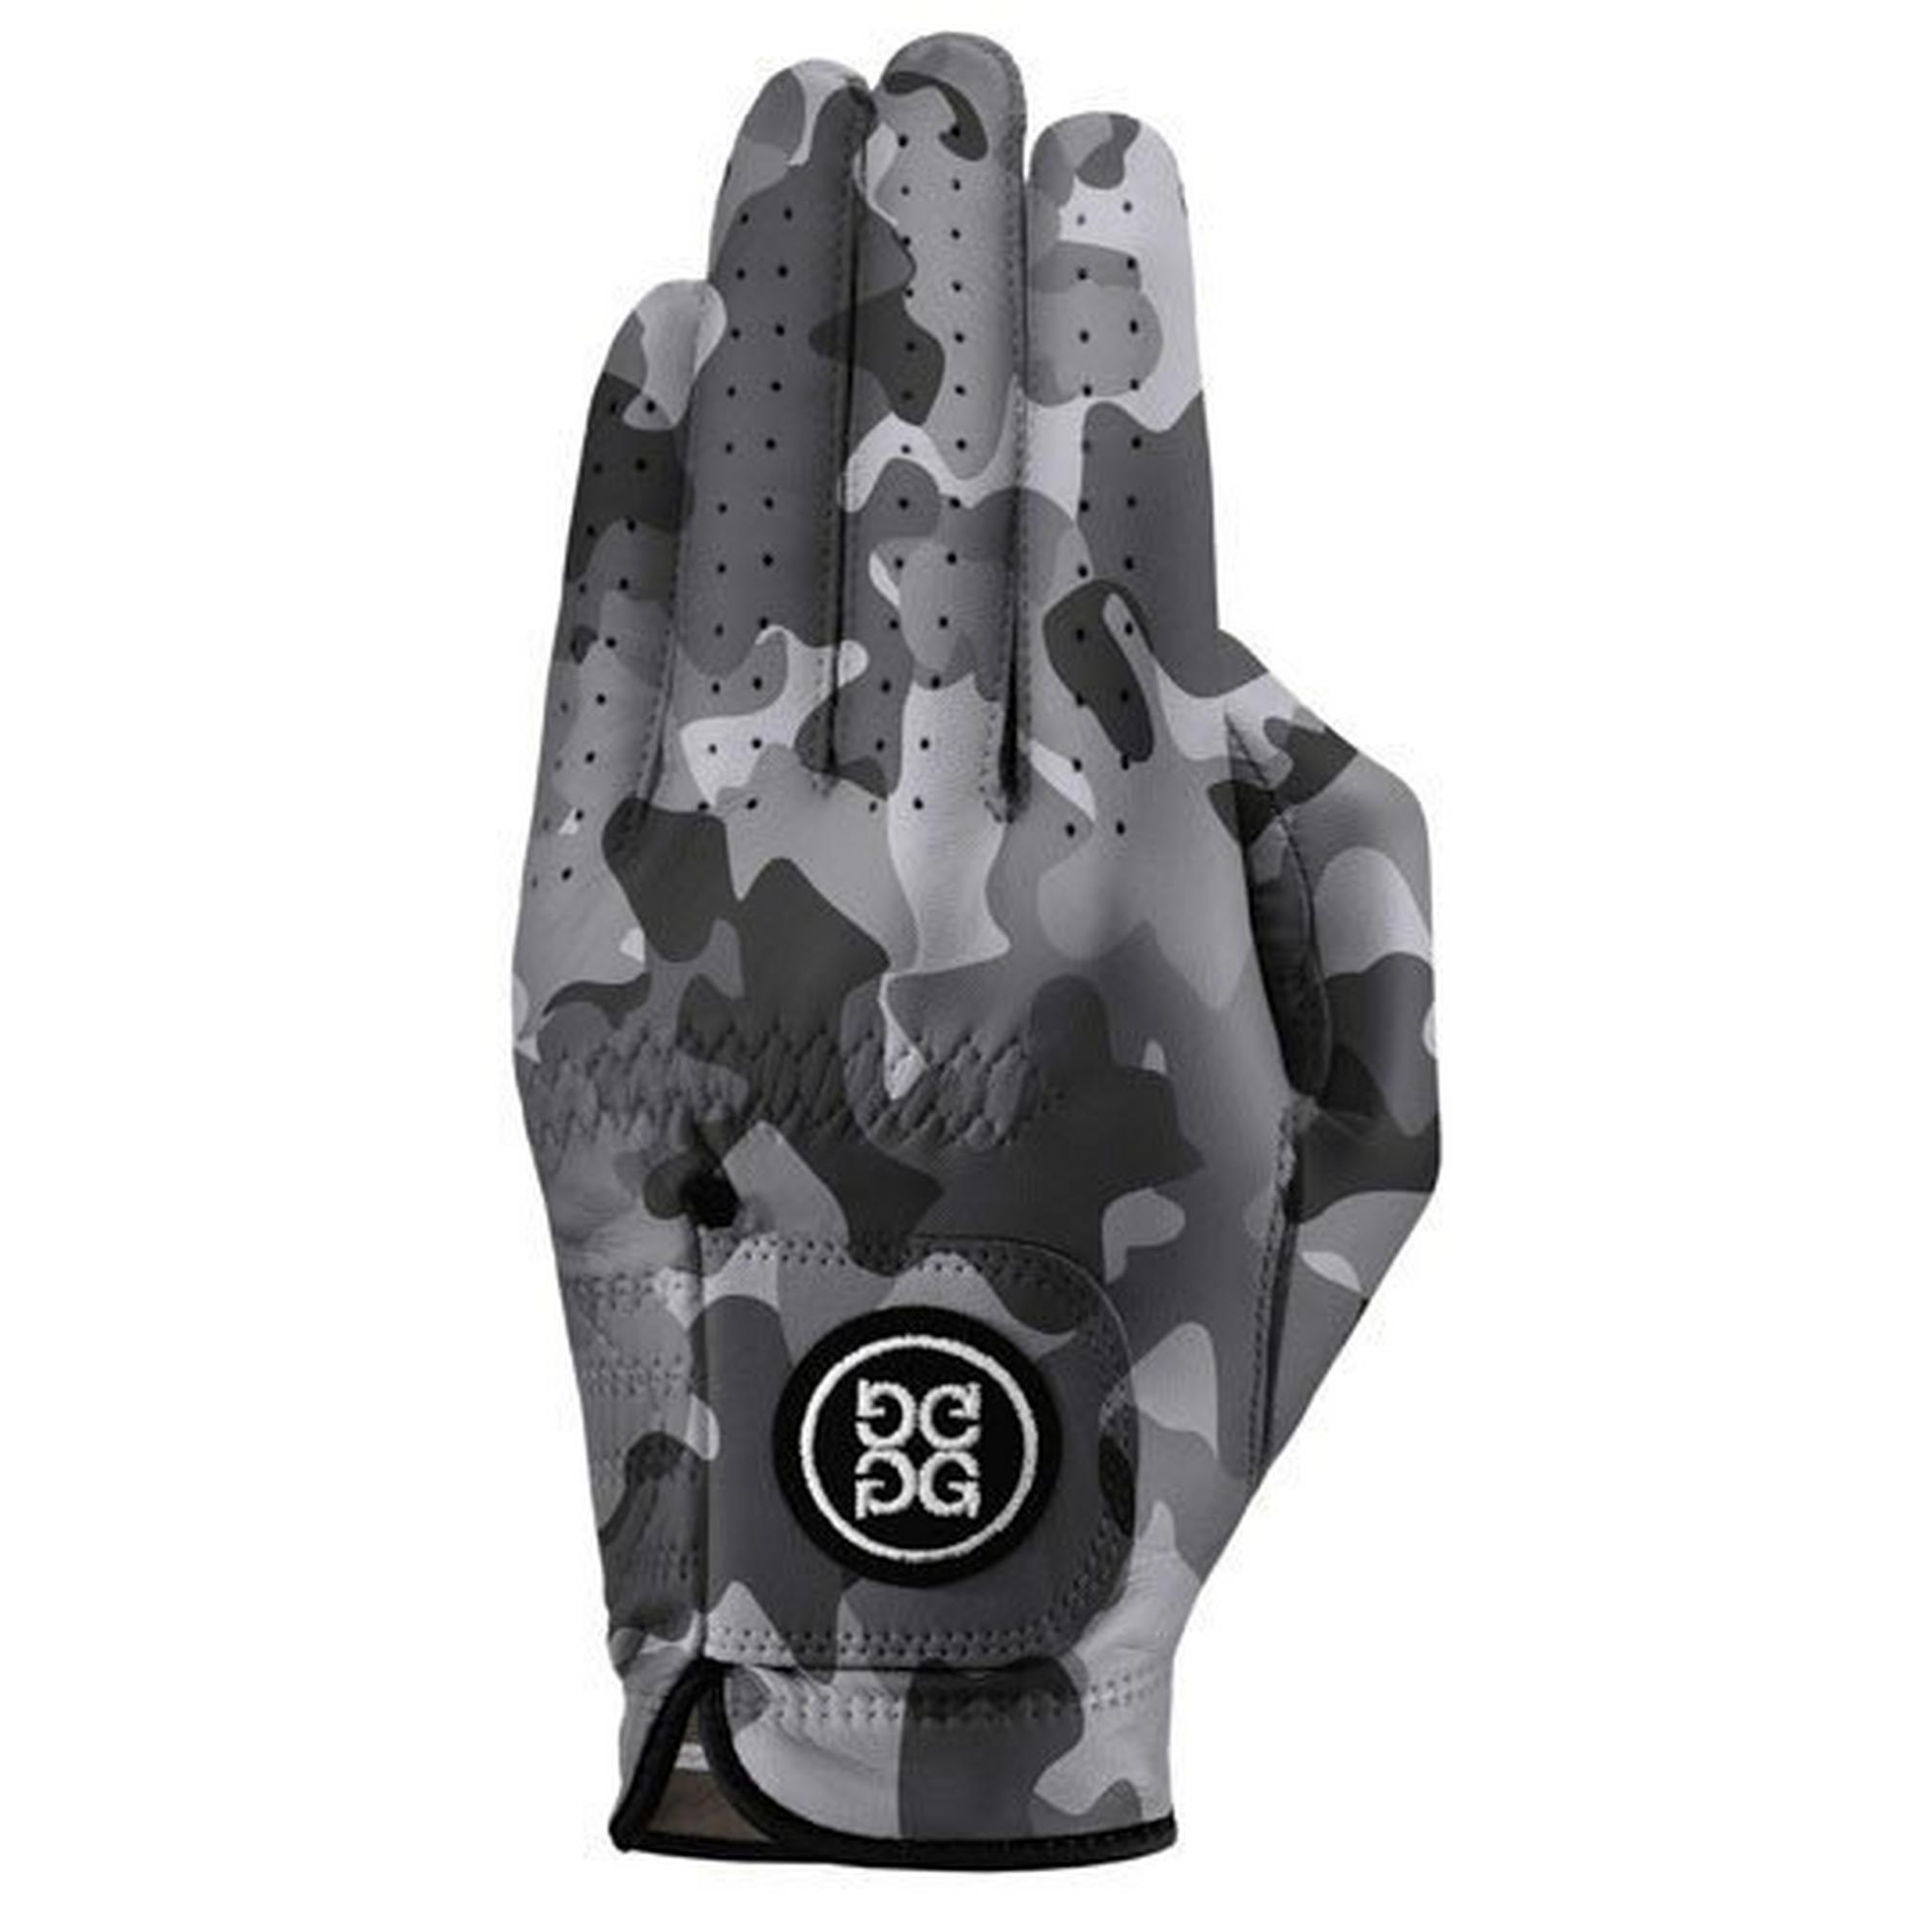 Special Edition Delta Force Golf Glove - RH